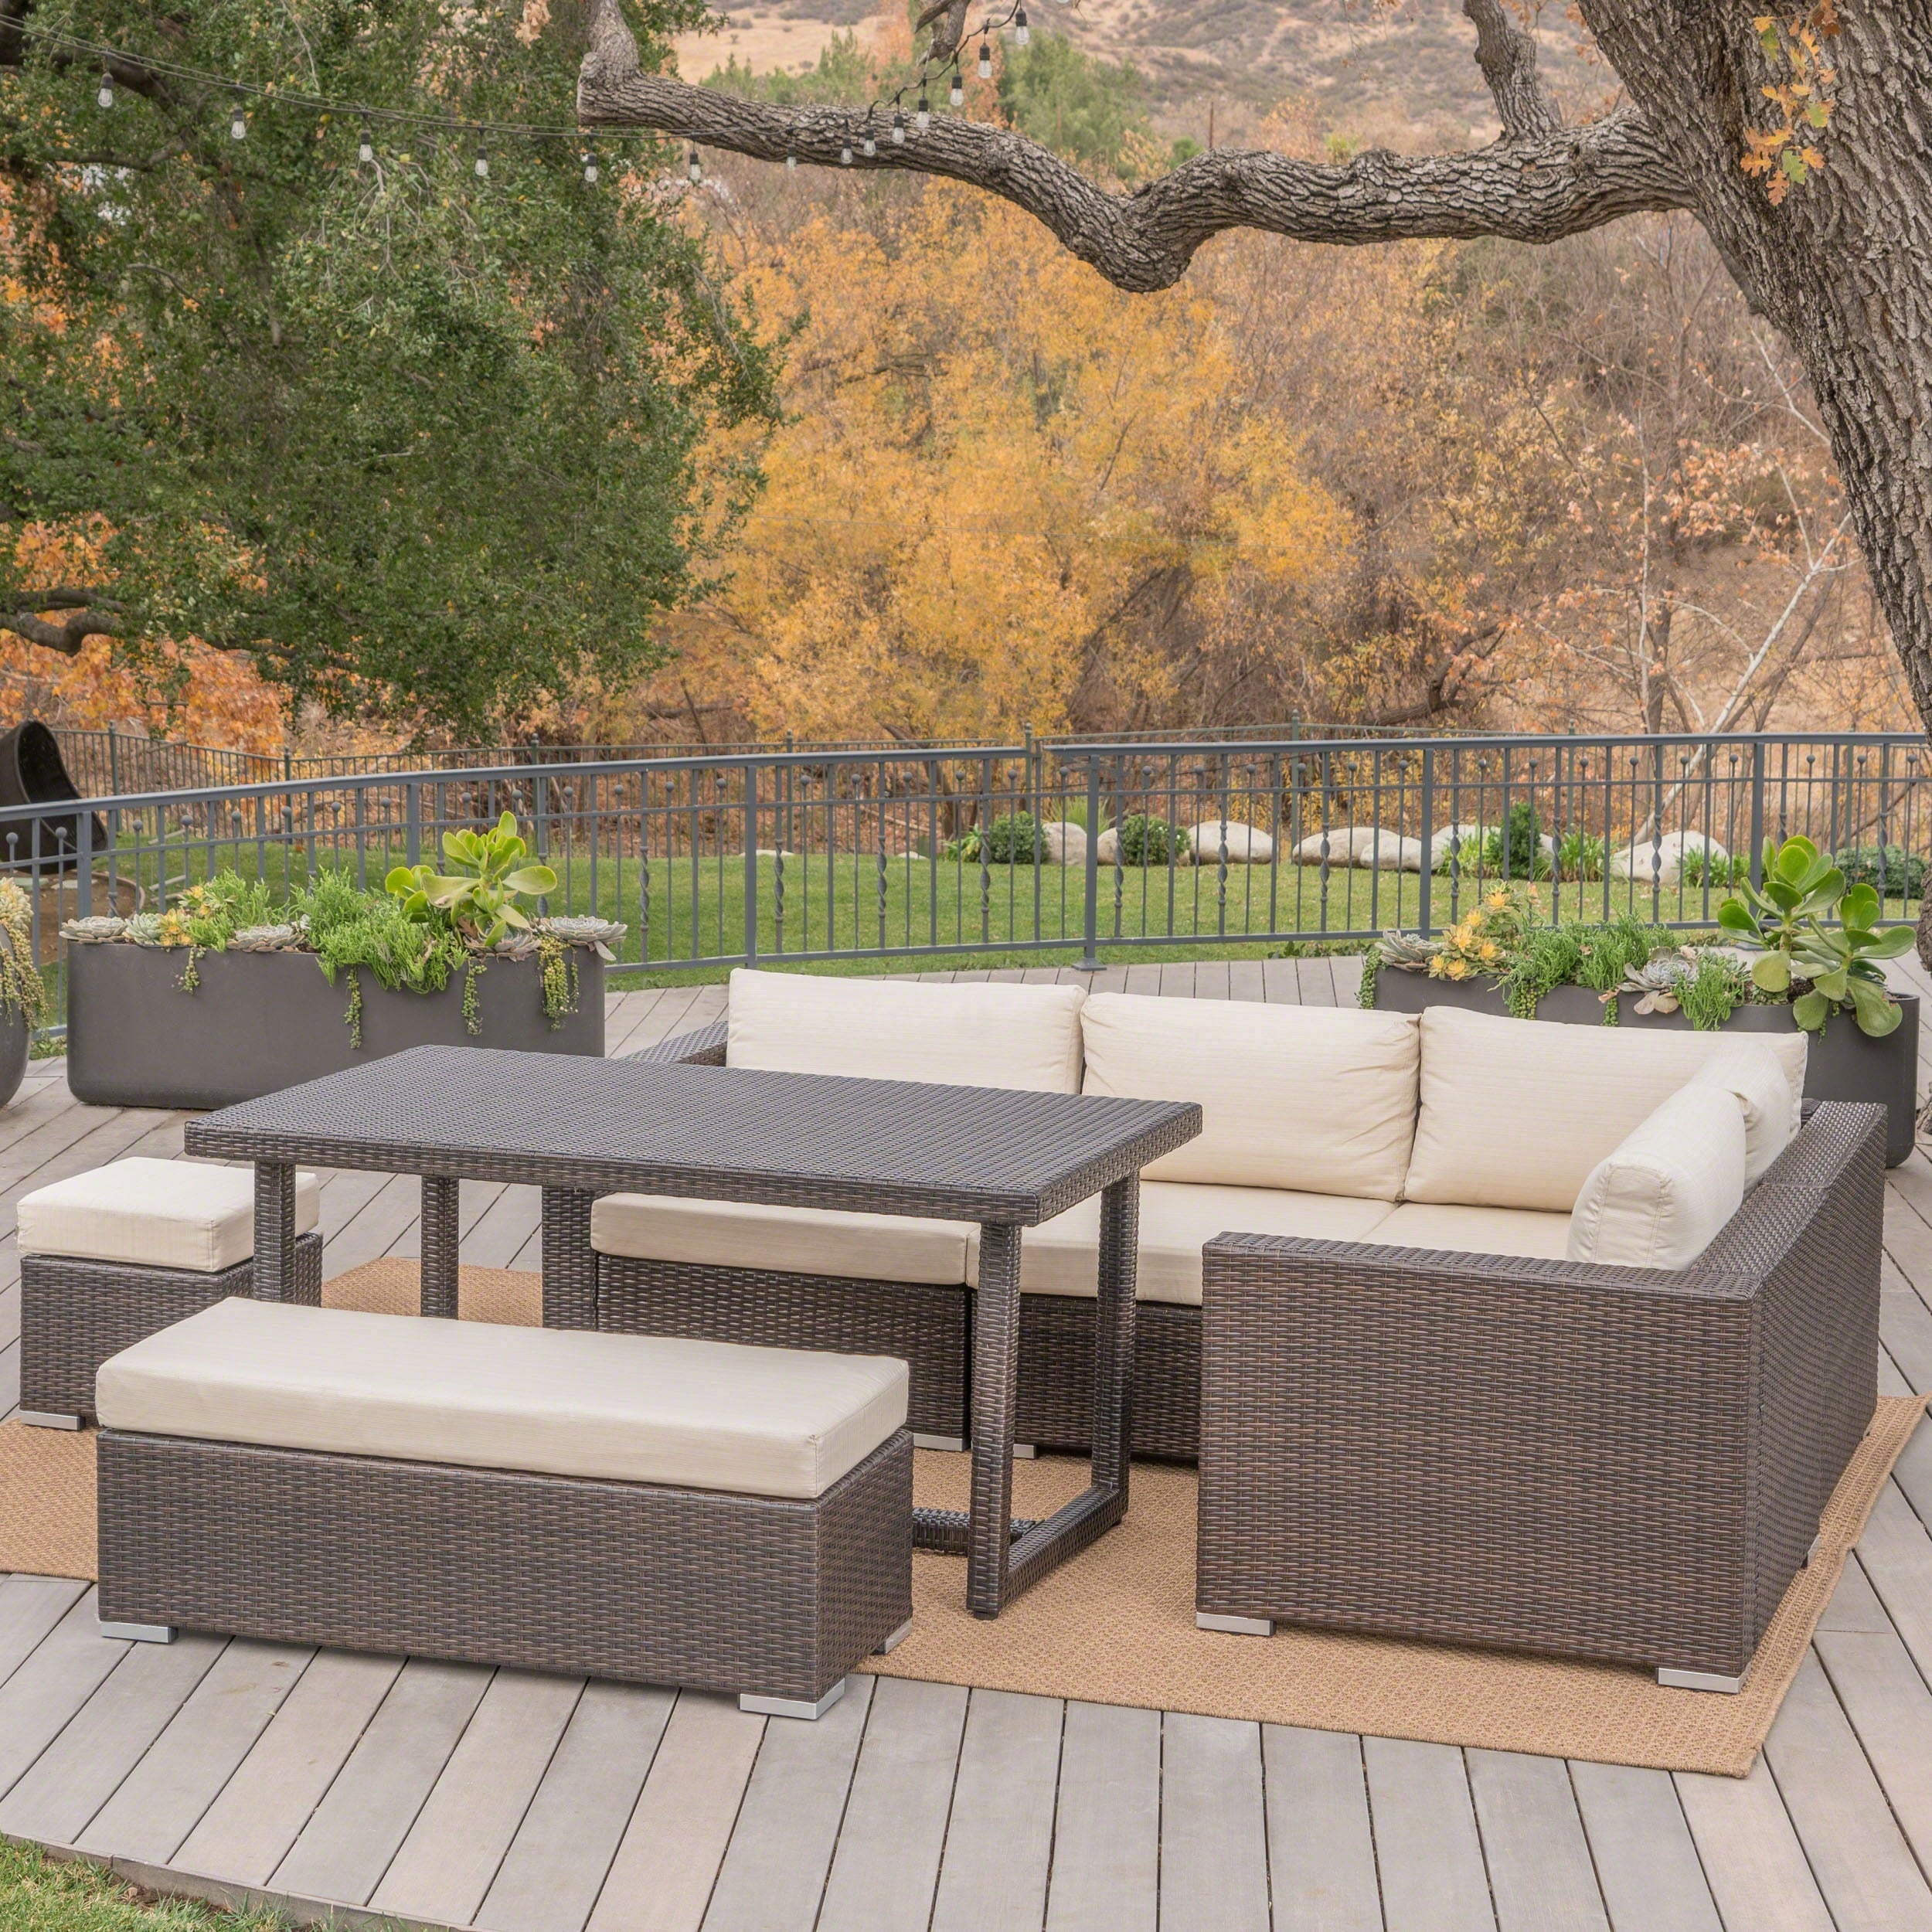 Picture of: Santa Rosa Outdoor 7 Piece Rectangle Aluminum Wicker Dining Sofa Set With Cushions By Christopher Knight Home Overstock 19834450